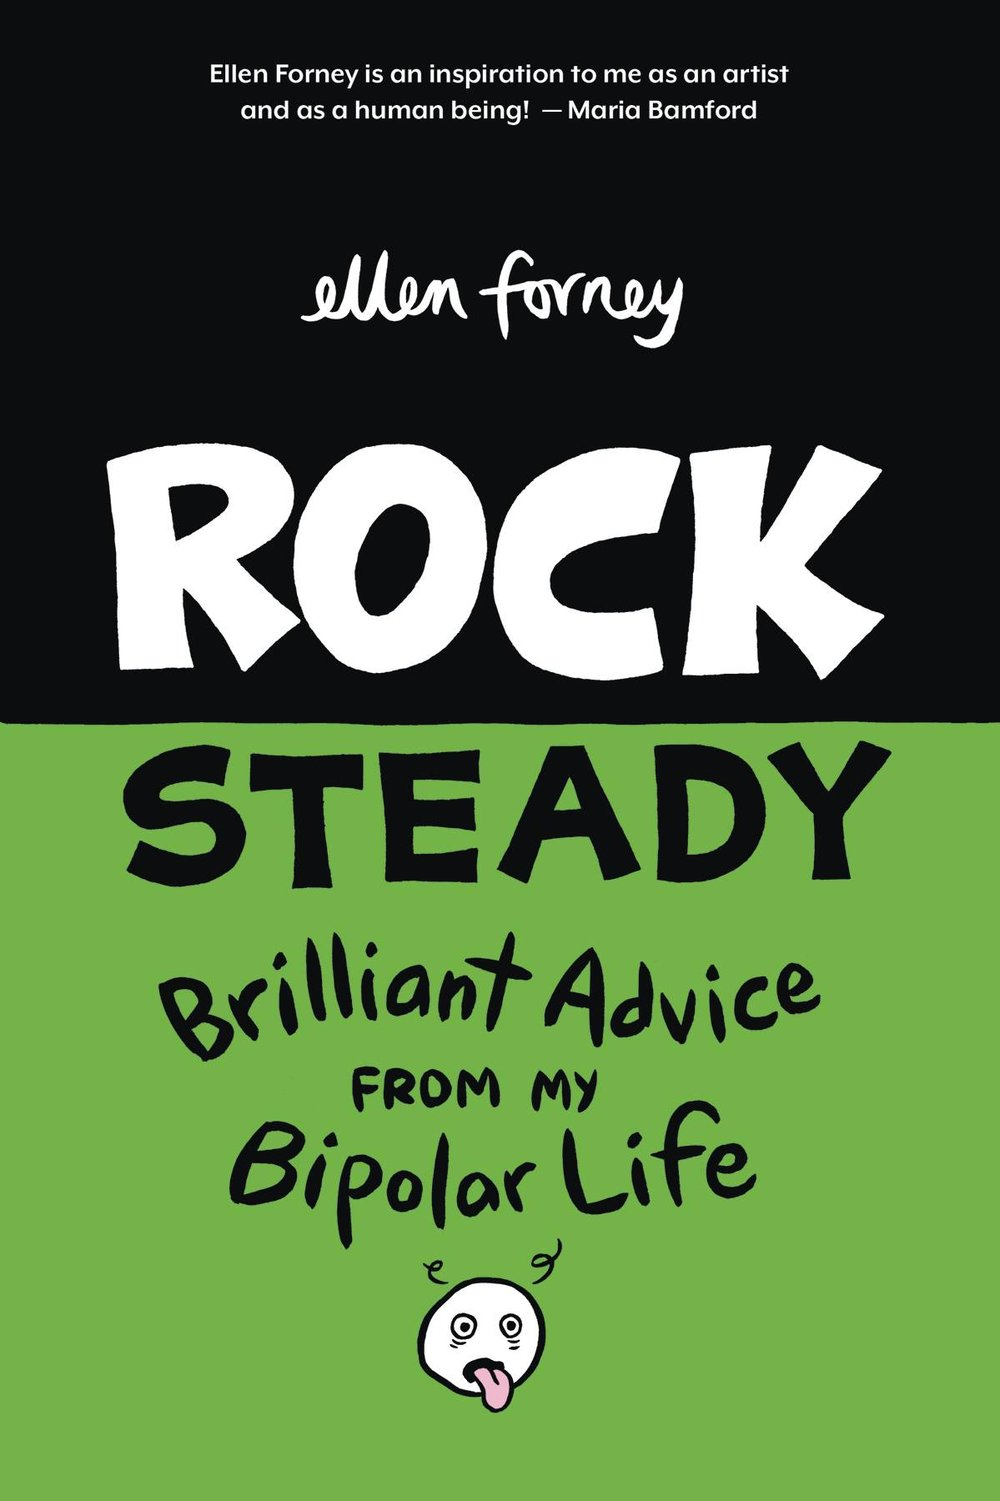 ROCK STEADY GN BRILLIANT ADVICE MY BIPOLAR LIFE FORNEY.jpg